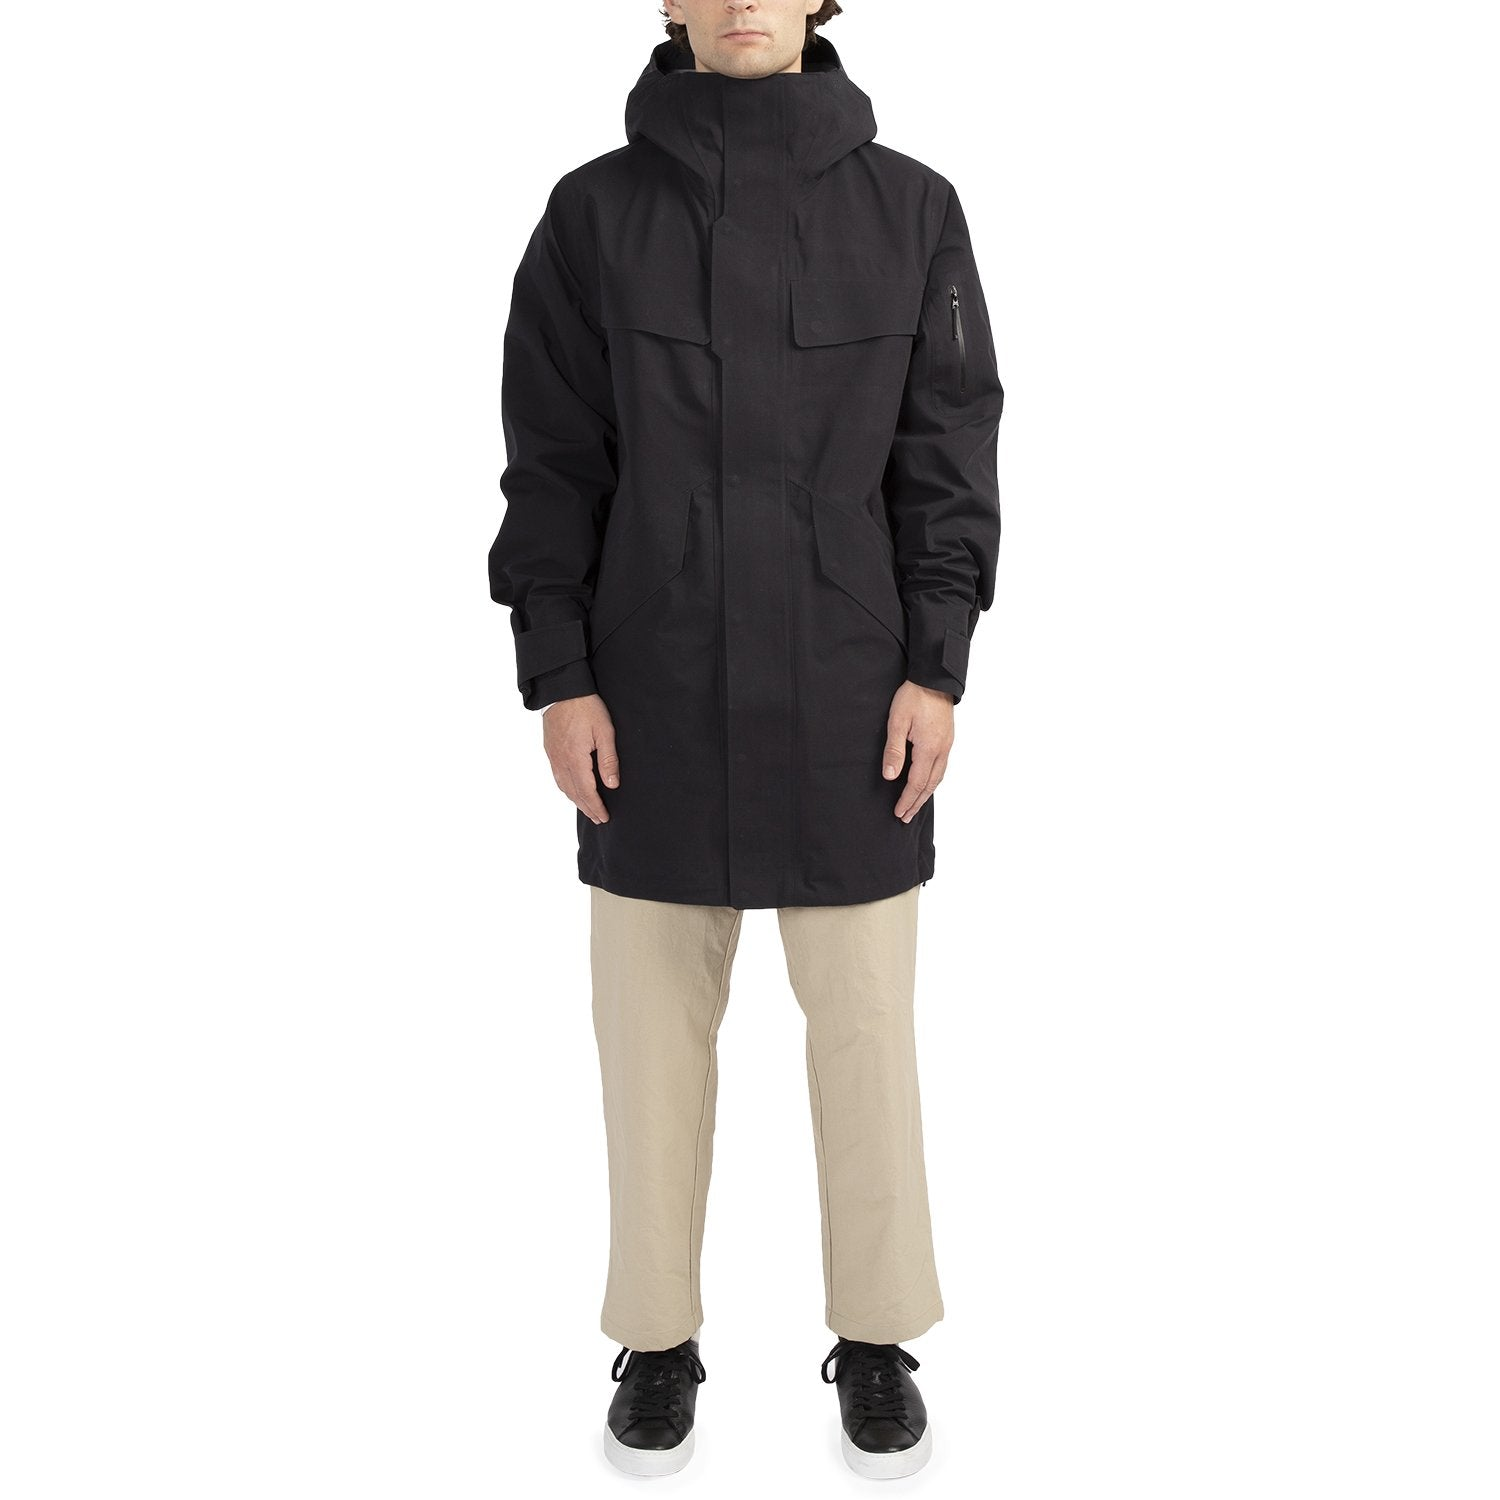 HOODED GORE-TEX COAT